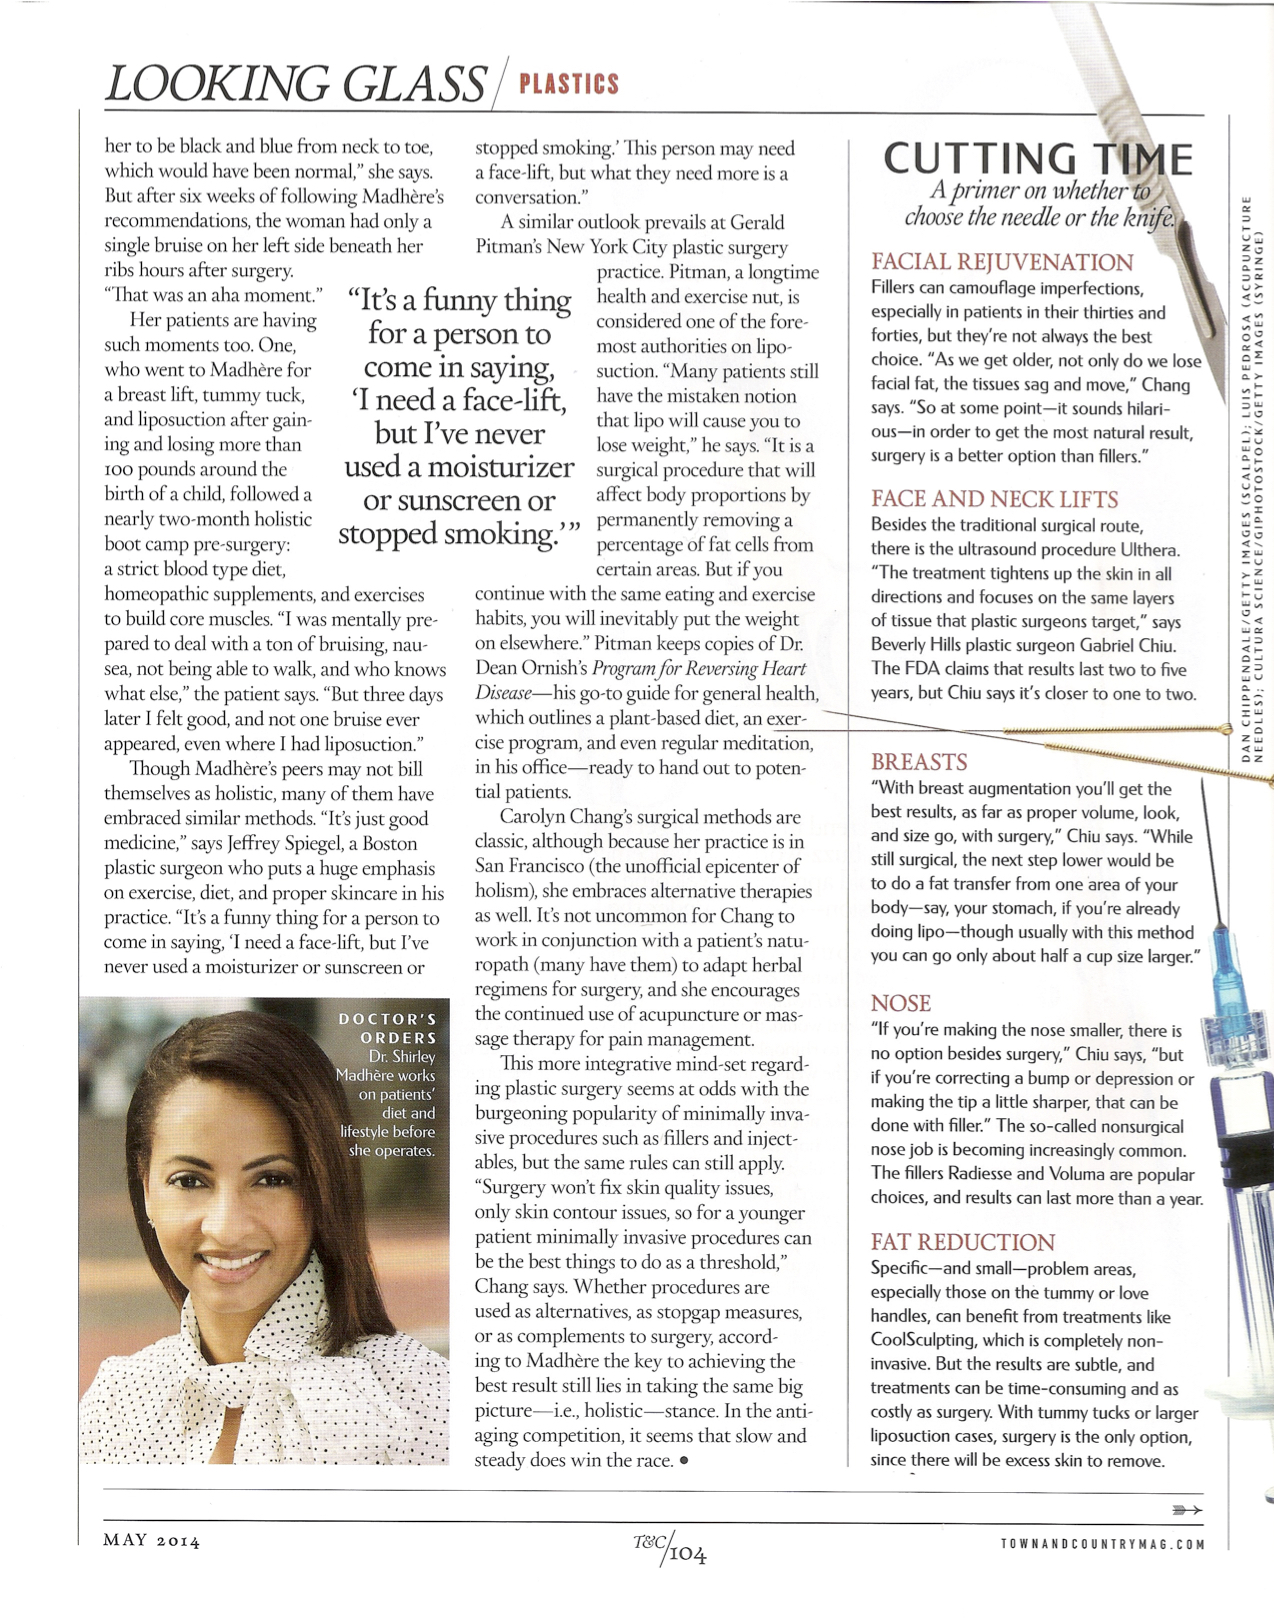 Town & Country- The Holistic Grail May 2014 pg 2.jpg